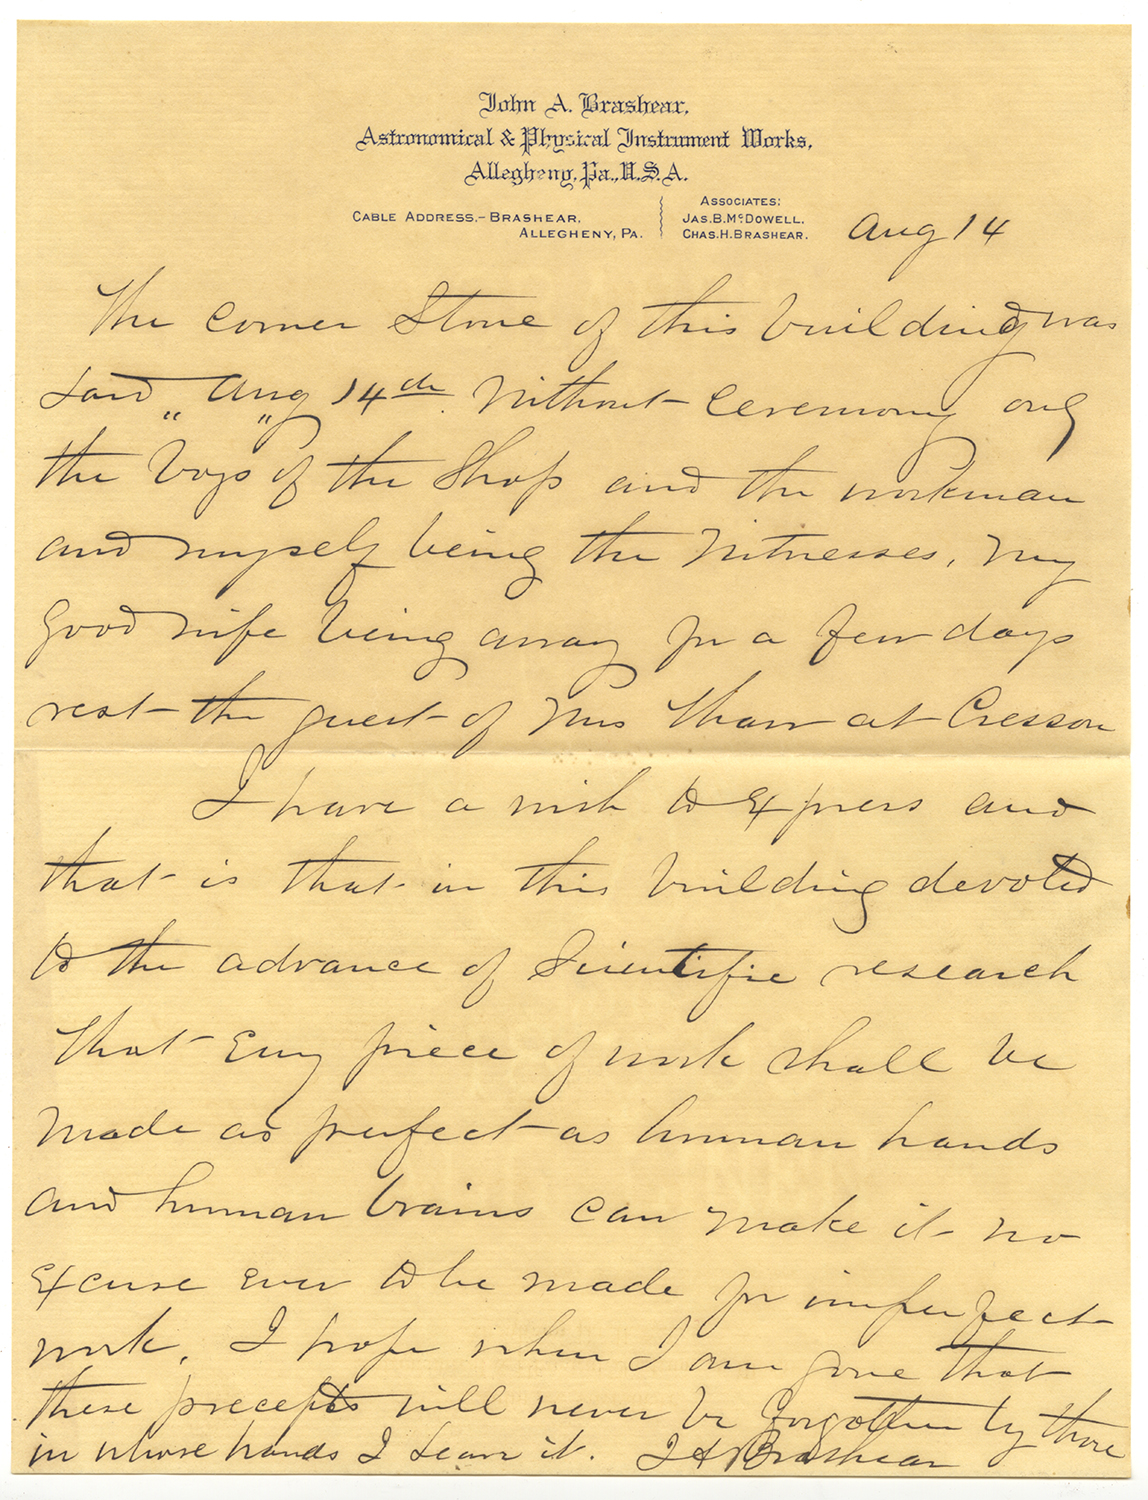 Letter written by John Brashear on Aug. 14, 1894, Heinz History Center.